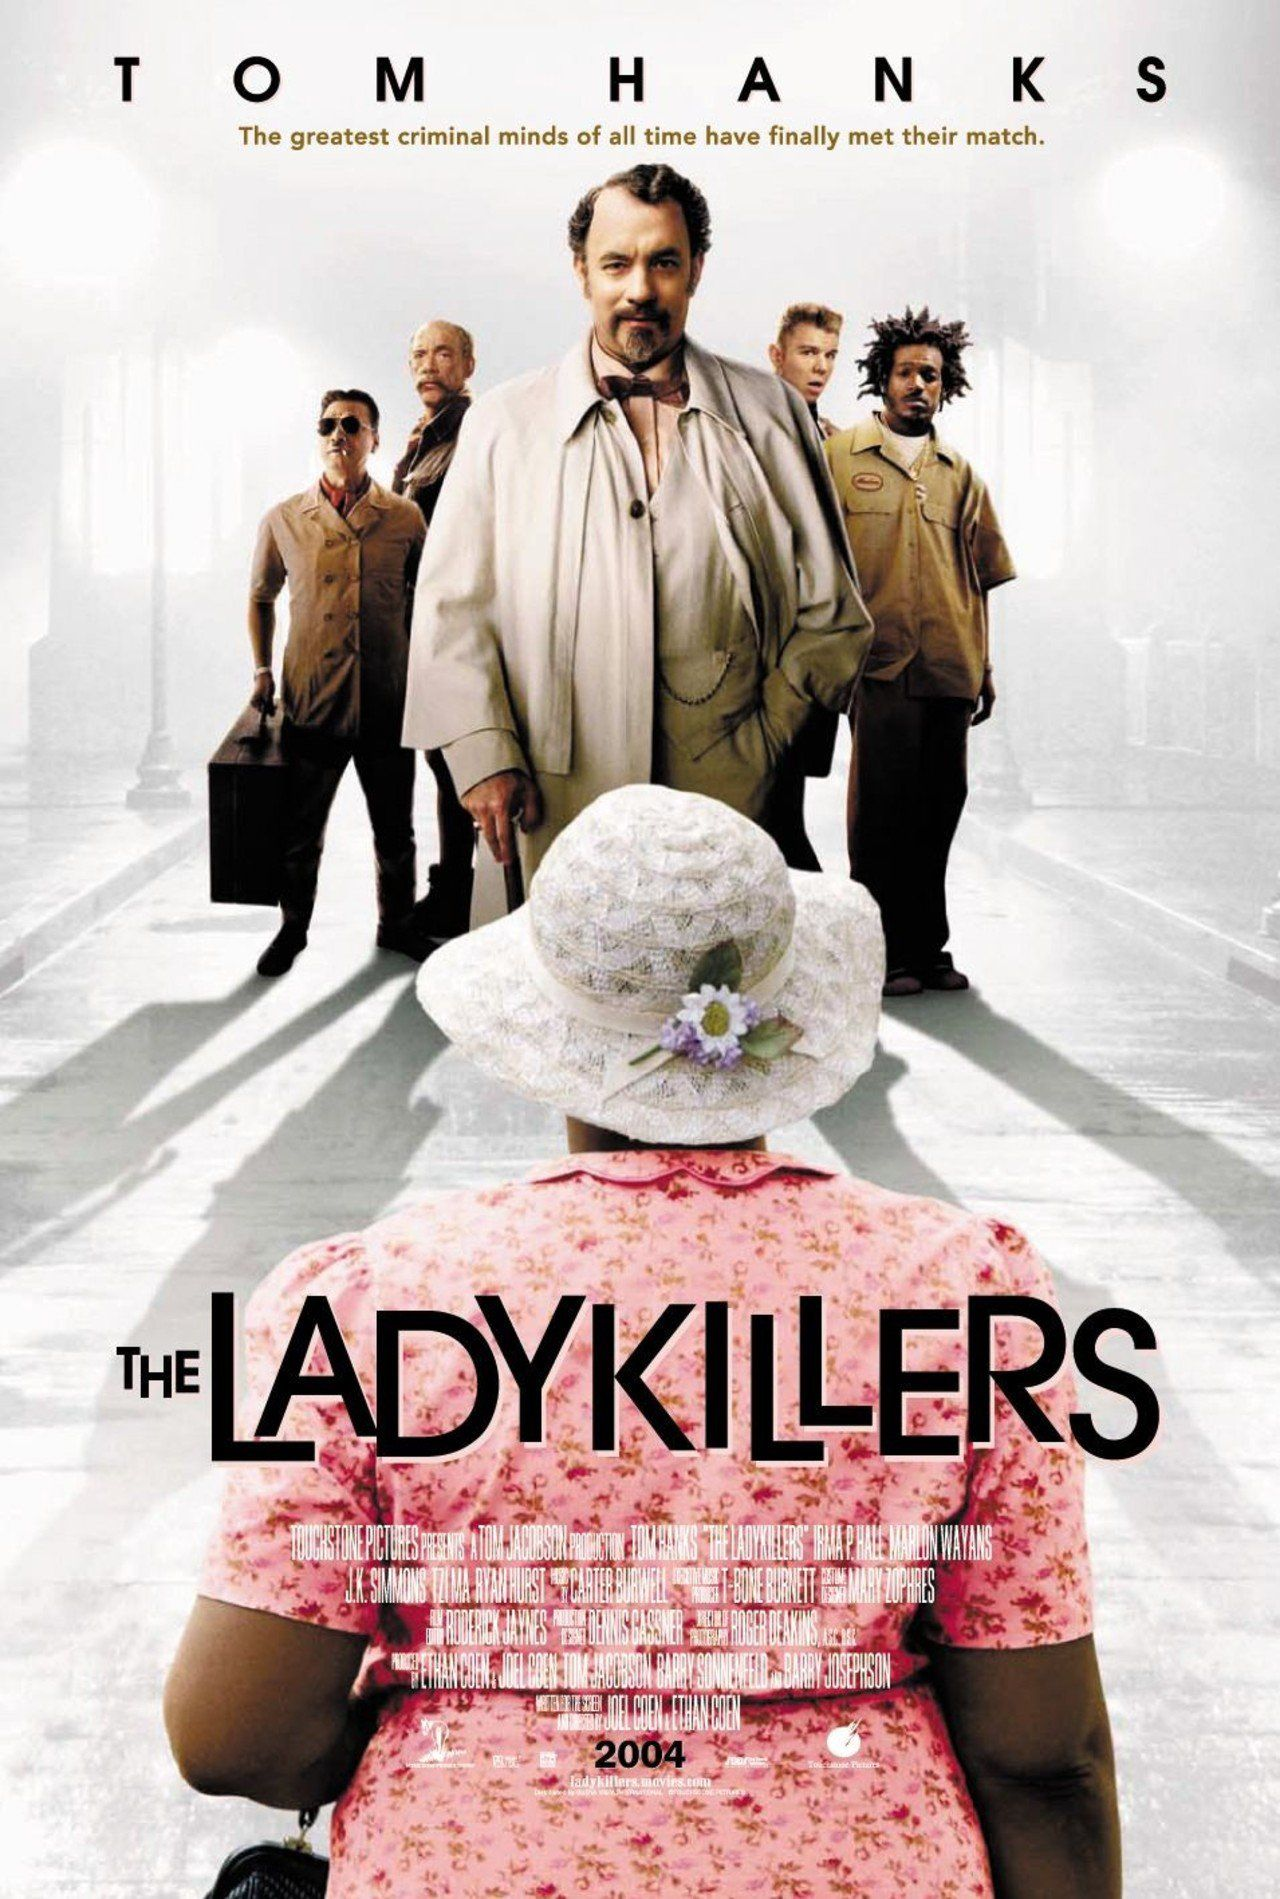 The ladykillers movie poster 2004 tom hanks comedy